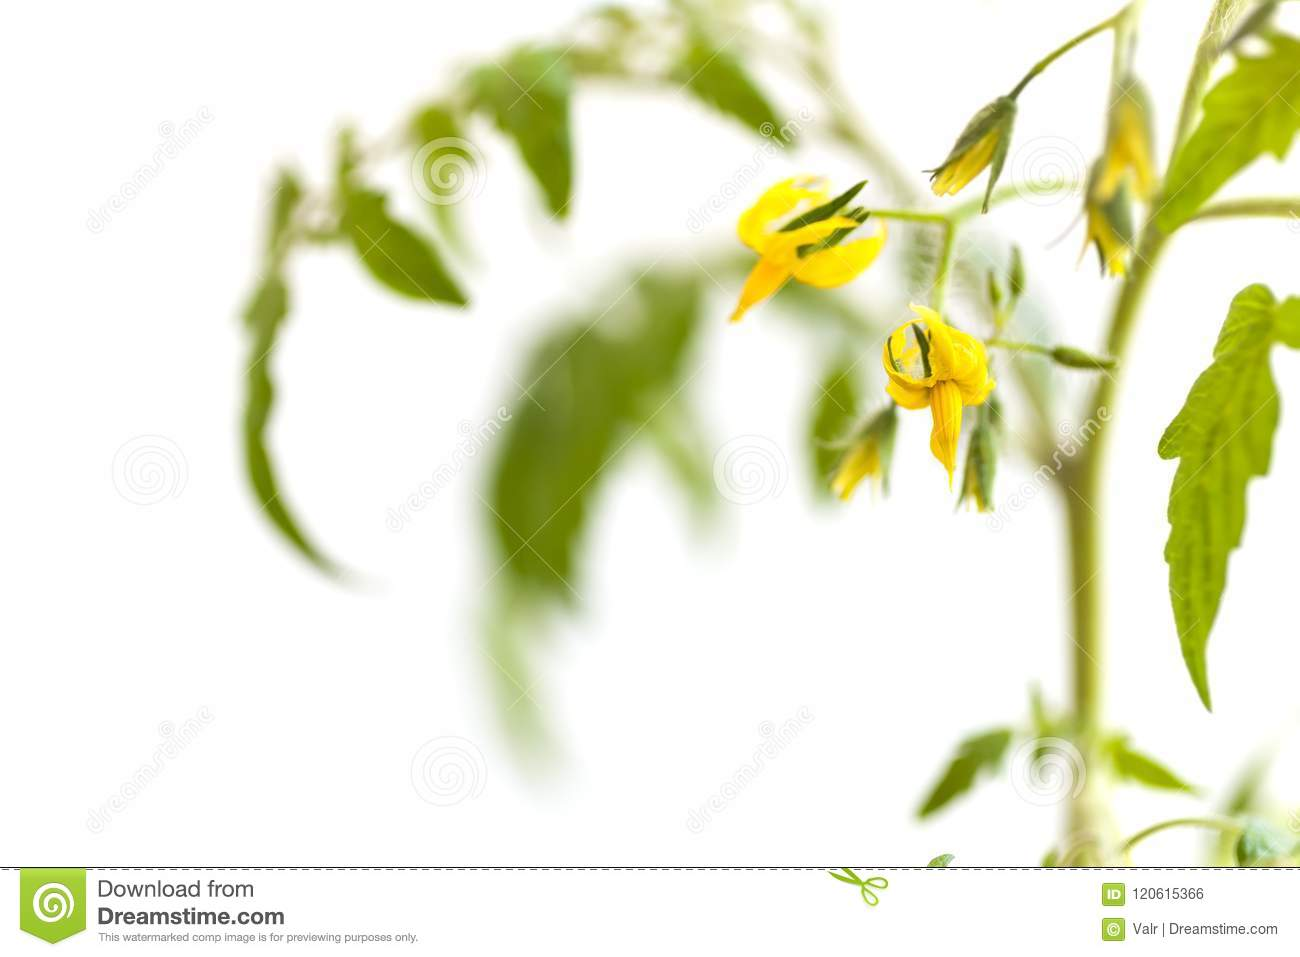 Twig of tomato plant with yellow flowers stock photo image of grow twig of tomato plant with yellow flowers mightylinksfo